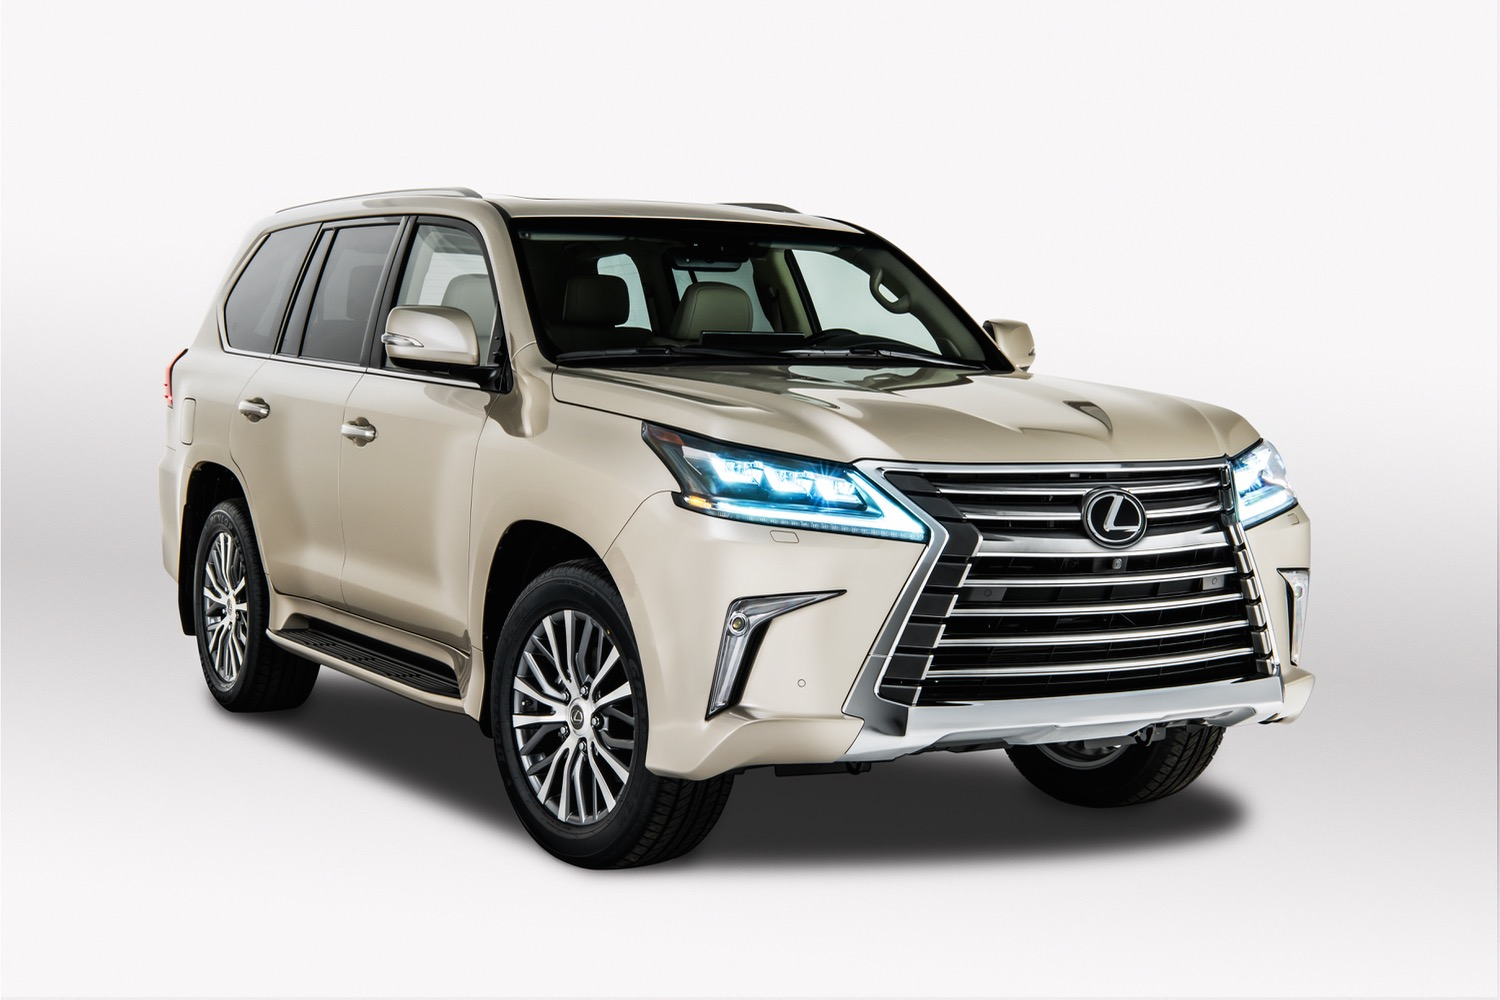 2018 lexus lx 570 roams the earth like a high end. Black Bedroom Furniture Sets. Home Design Ideas